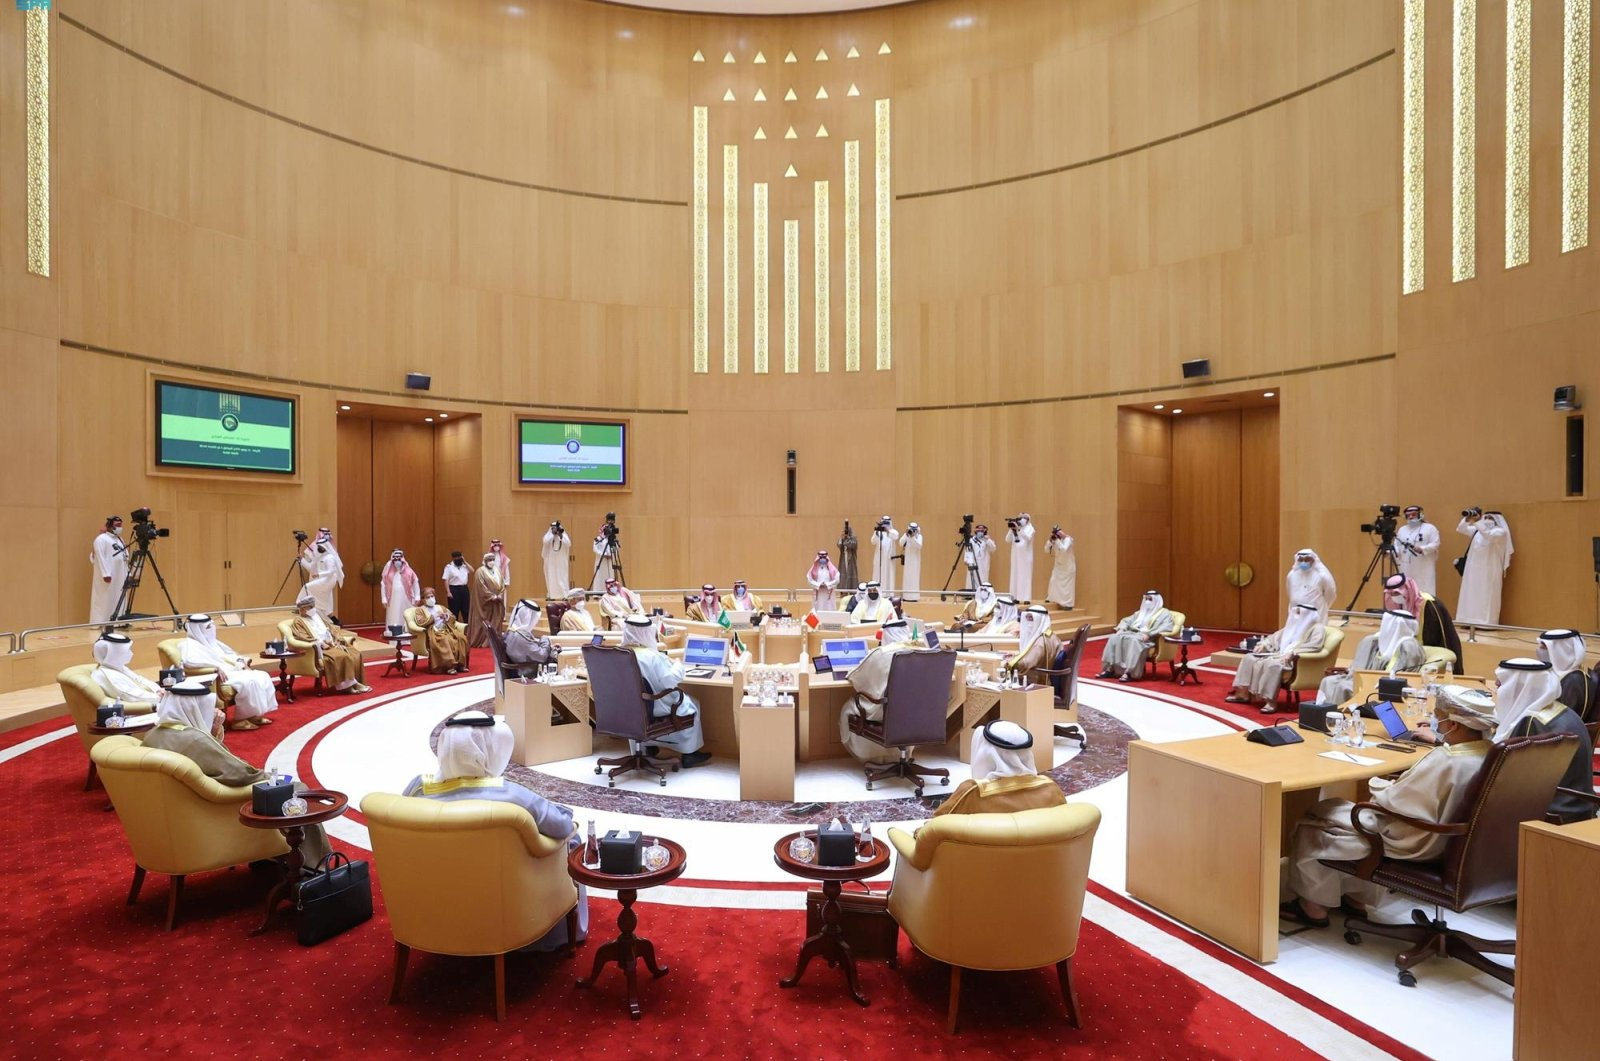 Foreign ministers of the Gulf Cooperation Council (GCC) meet in Riyadh, Saudi Arabia, June 16, 2021. (Reuters Photo)